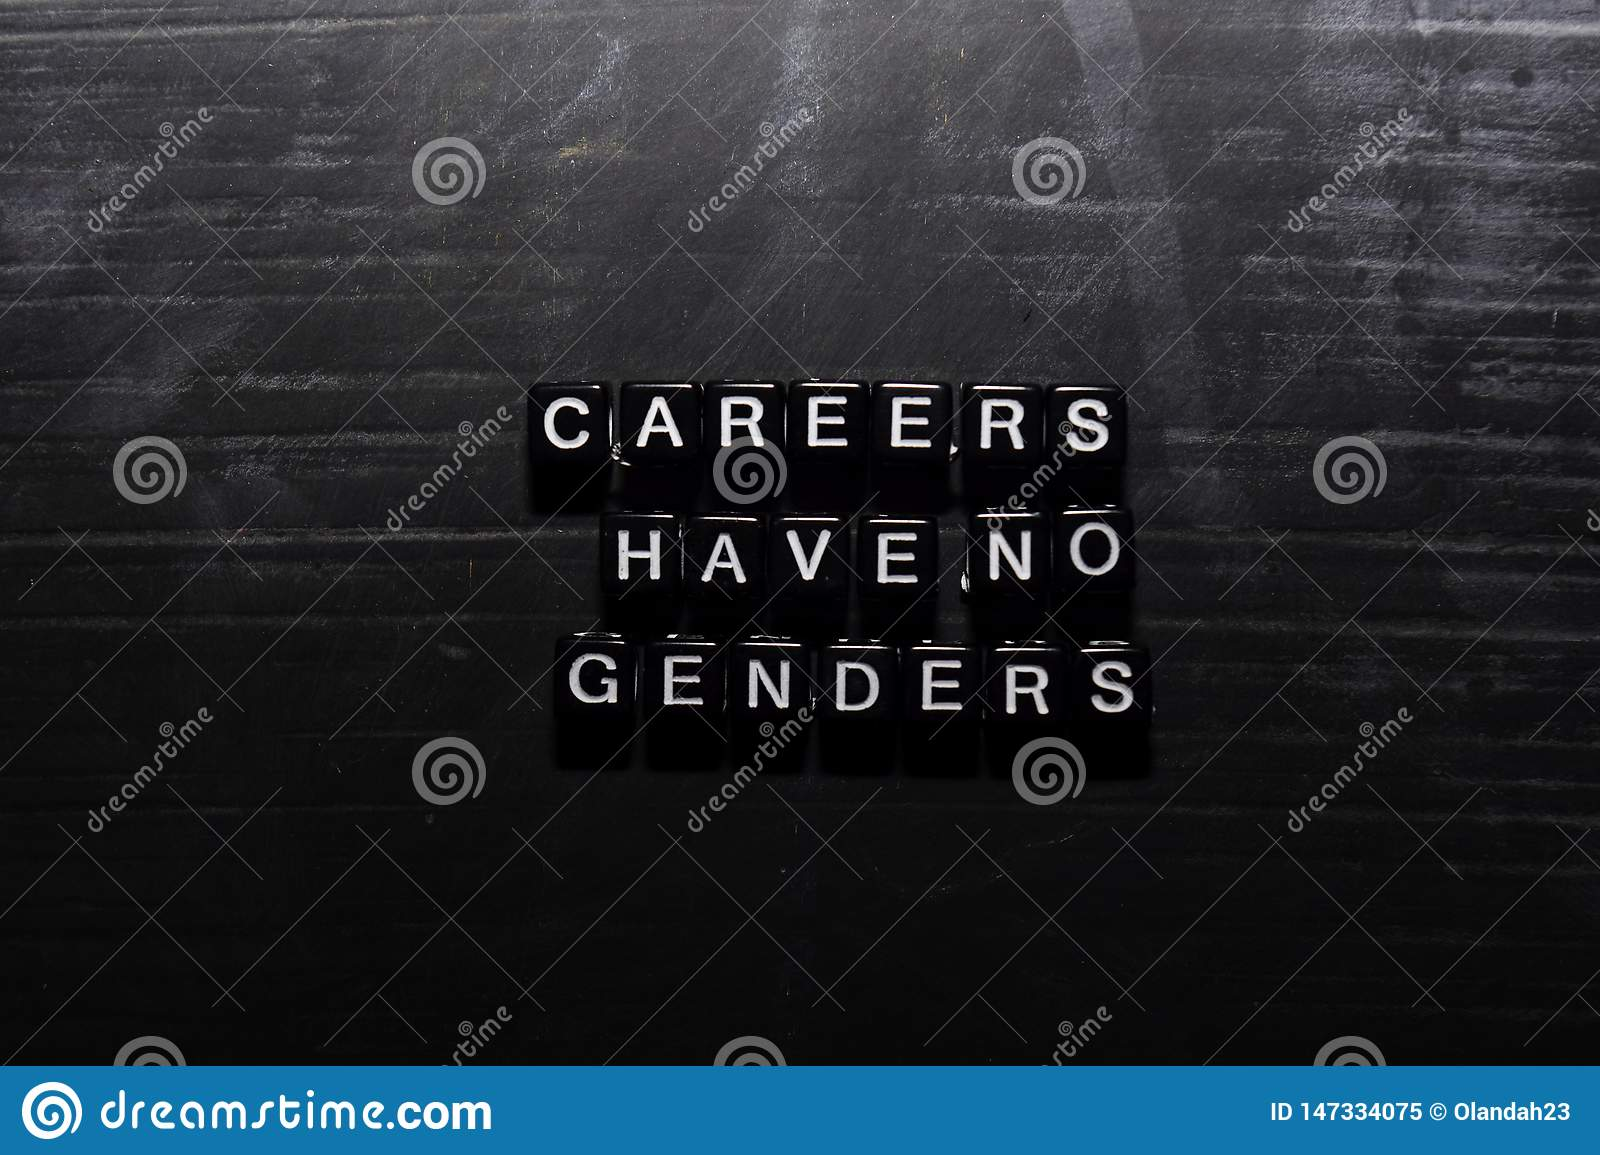 Careers have no genders on wooden blocks. Education, Motivation and inspiration concept